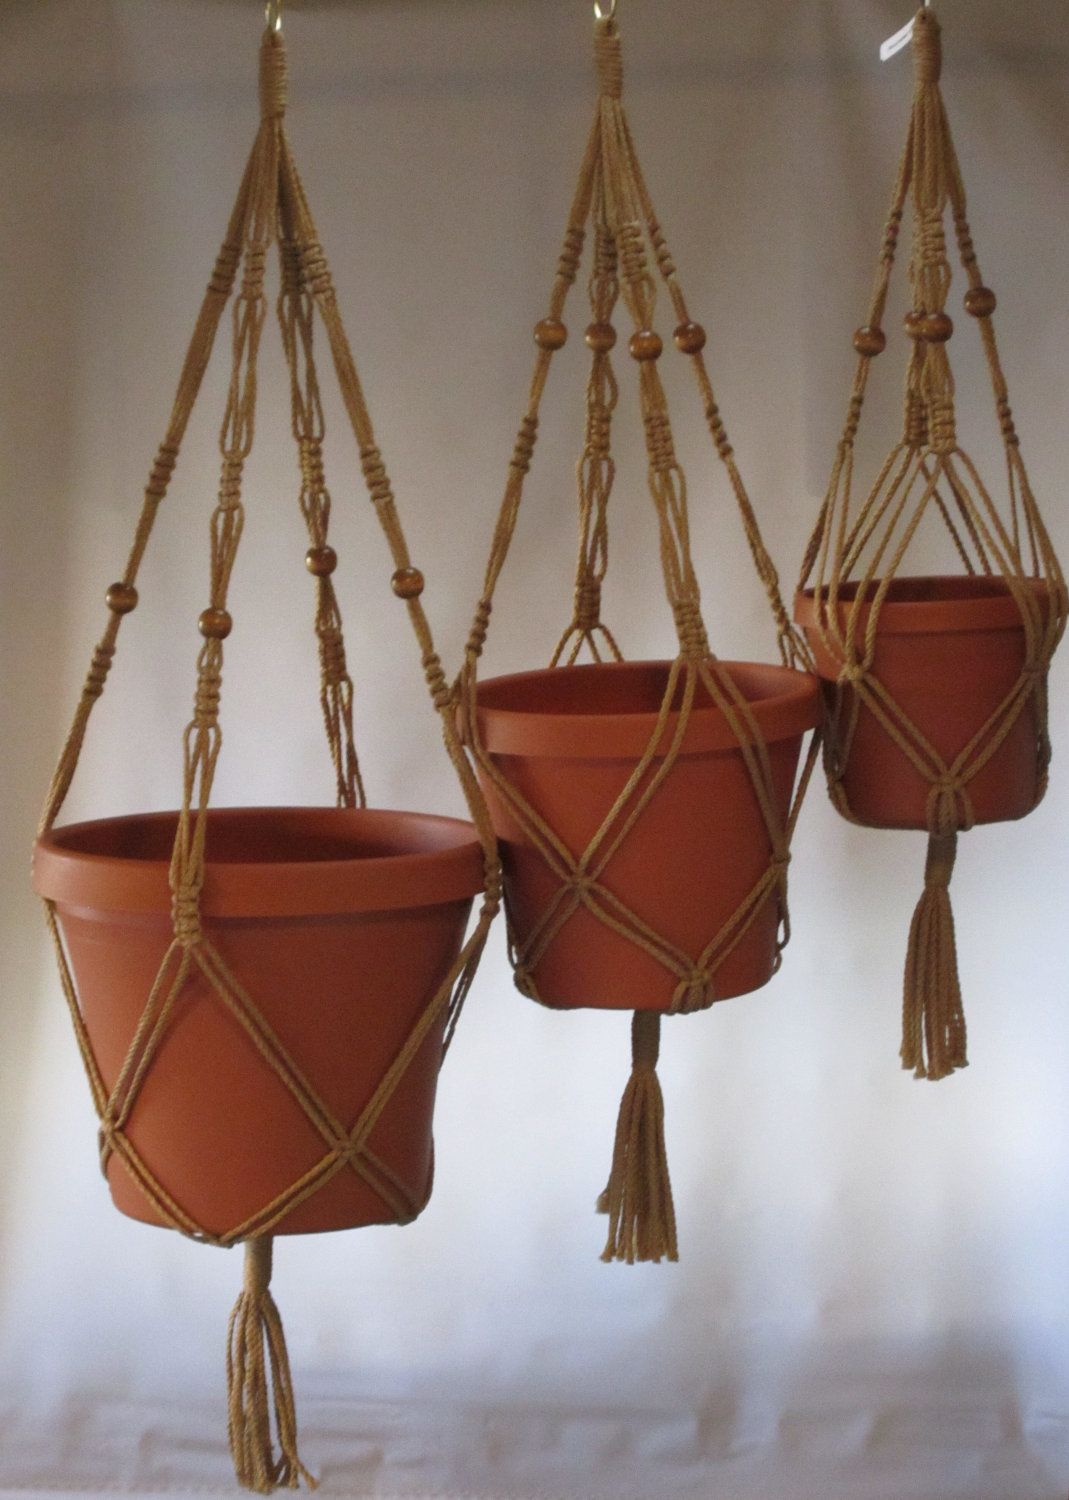 macrame plant hangers vintage style trio 24 inch 30 inch and